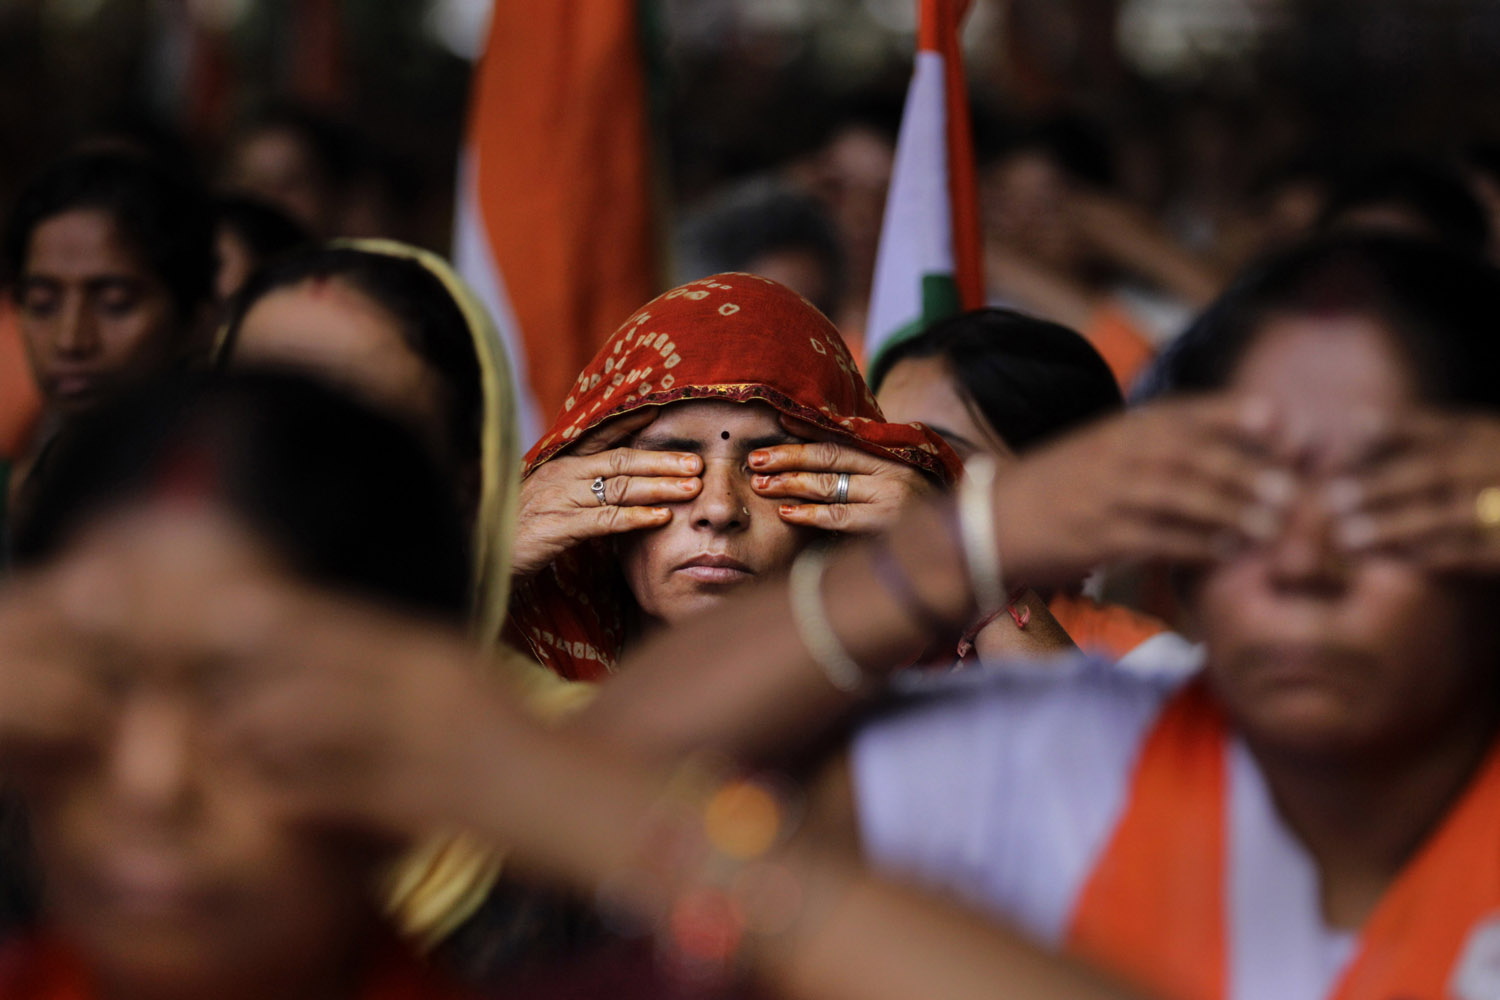 Aug. 10, 2012. Supporters of Indian yoga guru Baba Ramdev perform yoga during an anti-corruption protest in New Delhi.